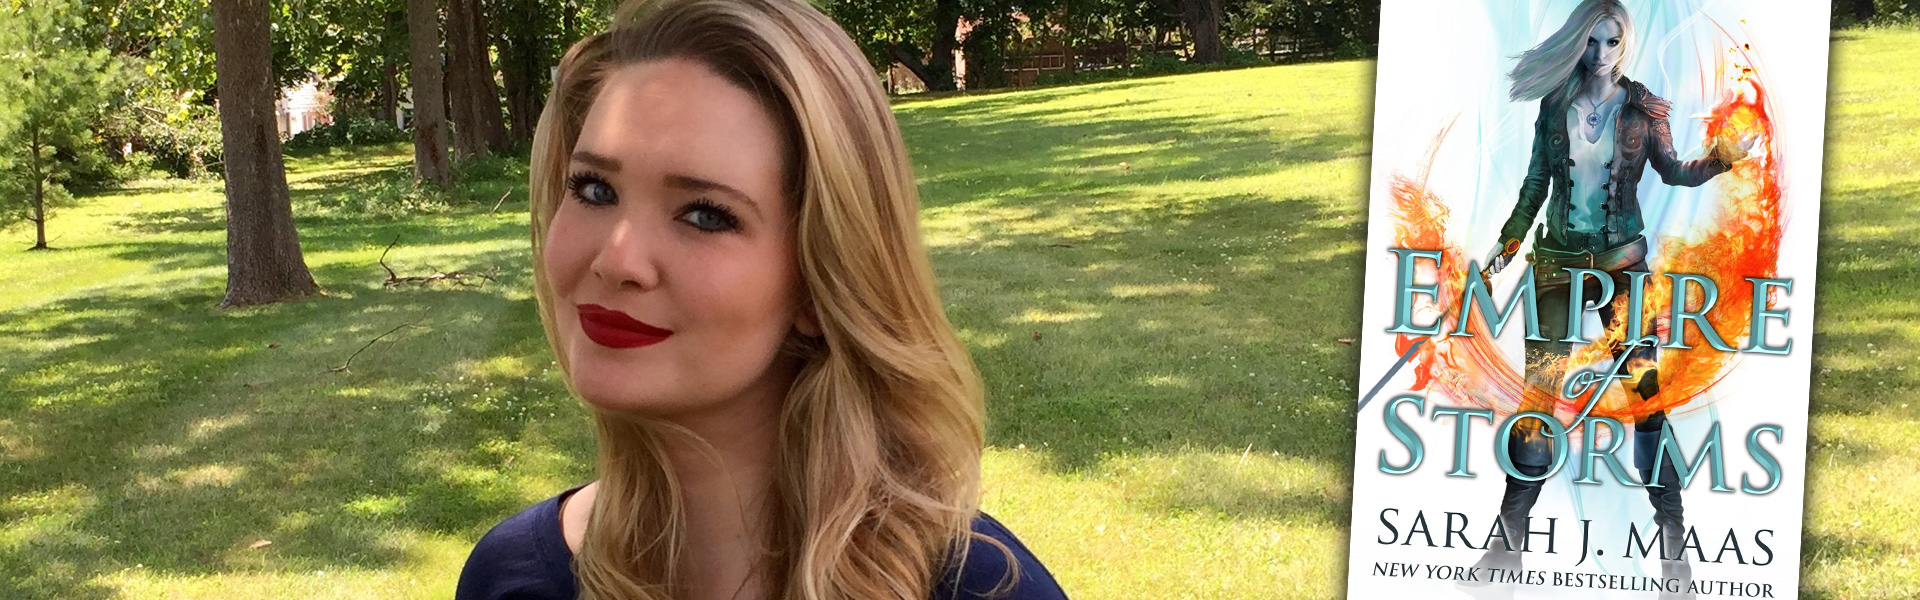 Sarah J Maas: An Exclusive Interview on Empire of Storms